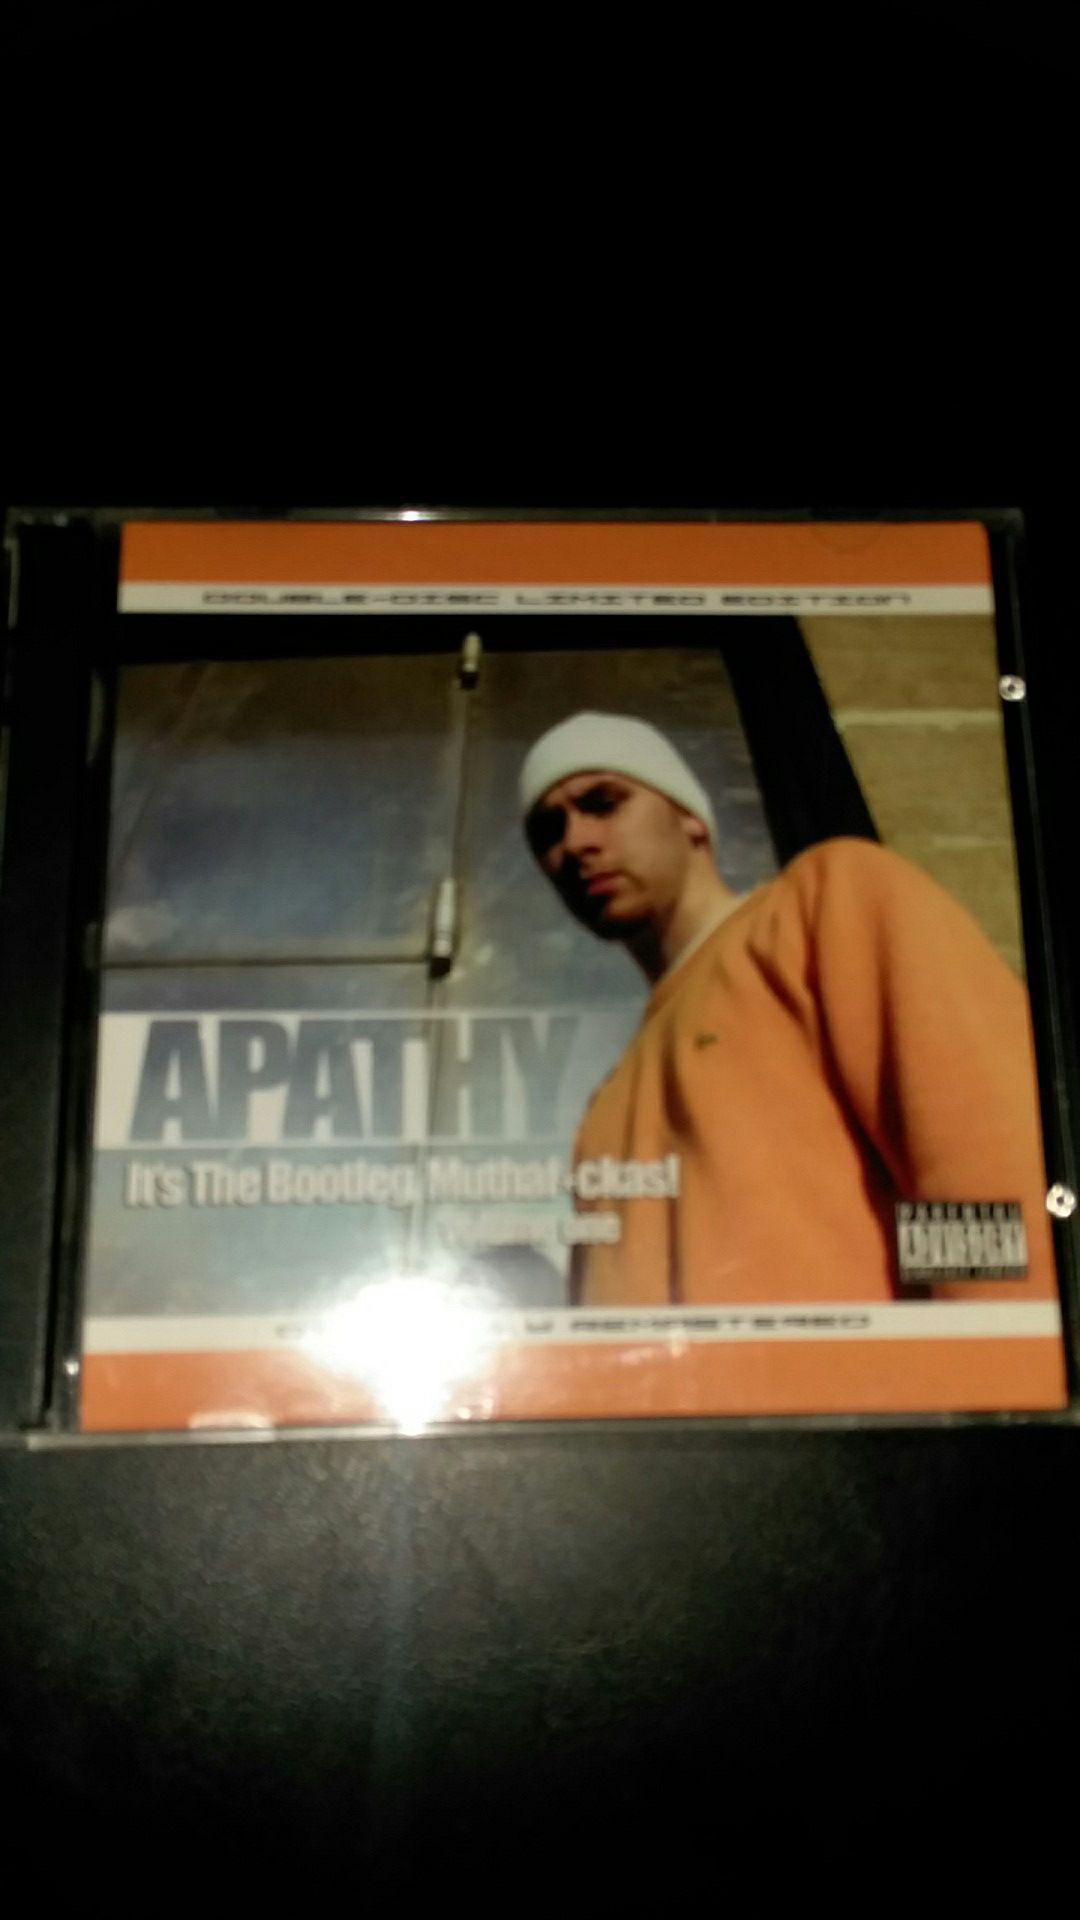 Apathy it's the bootleg vol. 1